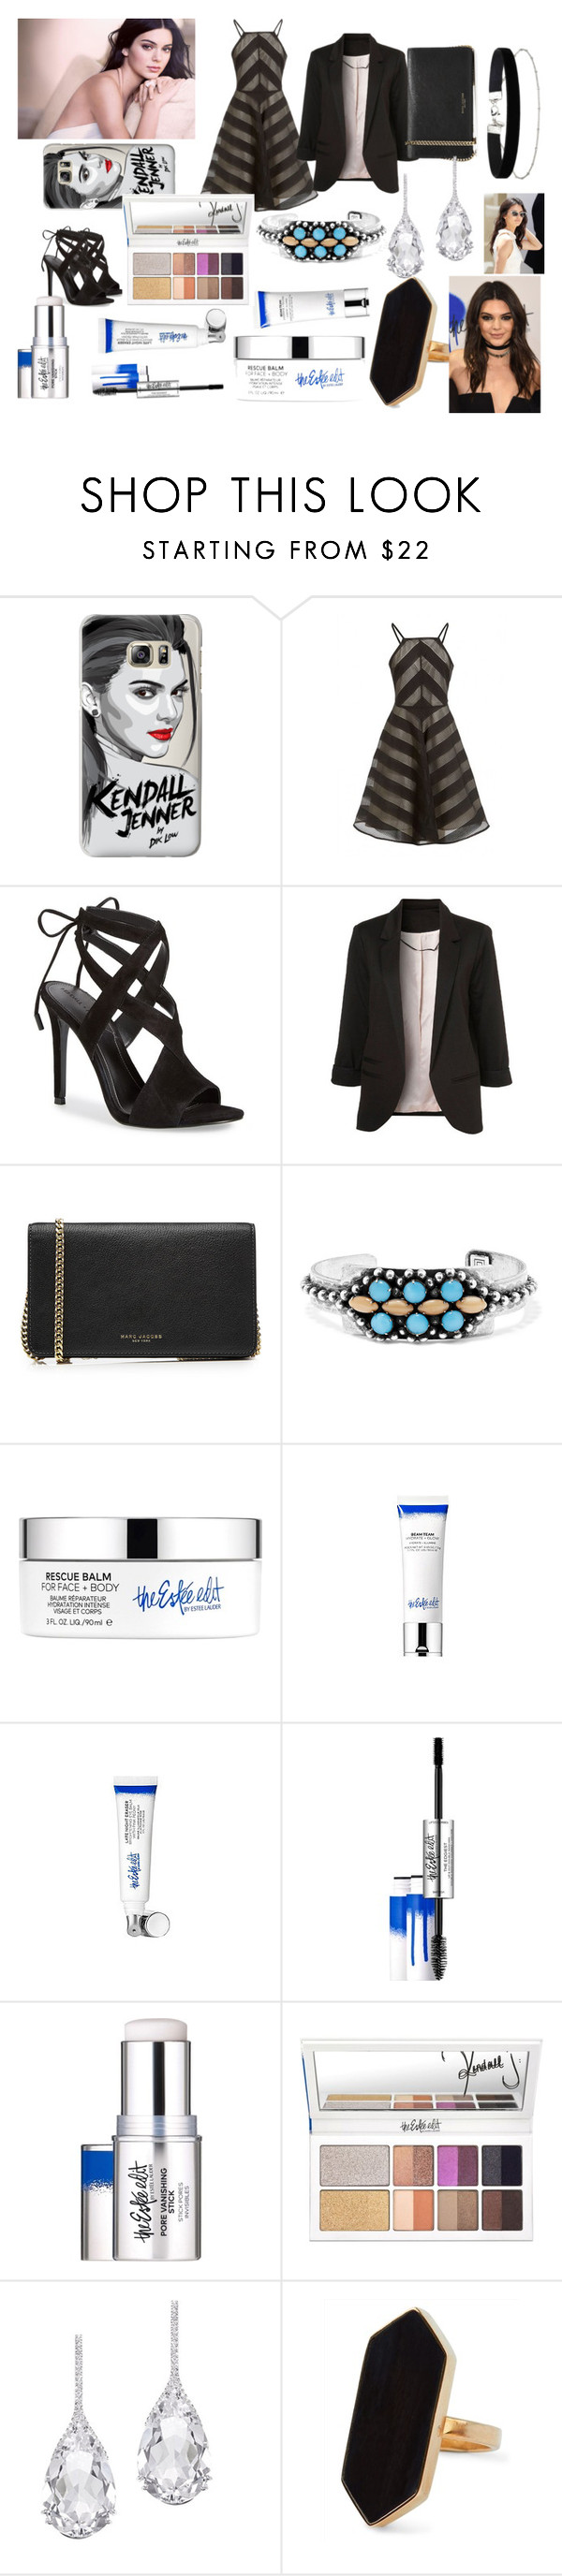 """""""A Kendall Jenner fan"""" by fashionpolyvore112num2 ❤ liked on Polyvore featuring Casetify, Estée Lauder, Kendall + Kylie, Marc Jacobs, DANNIJO, Plukka, Jaeger and Miss Selfridge"""